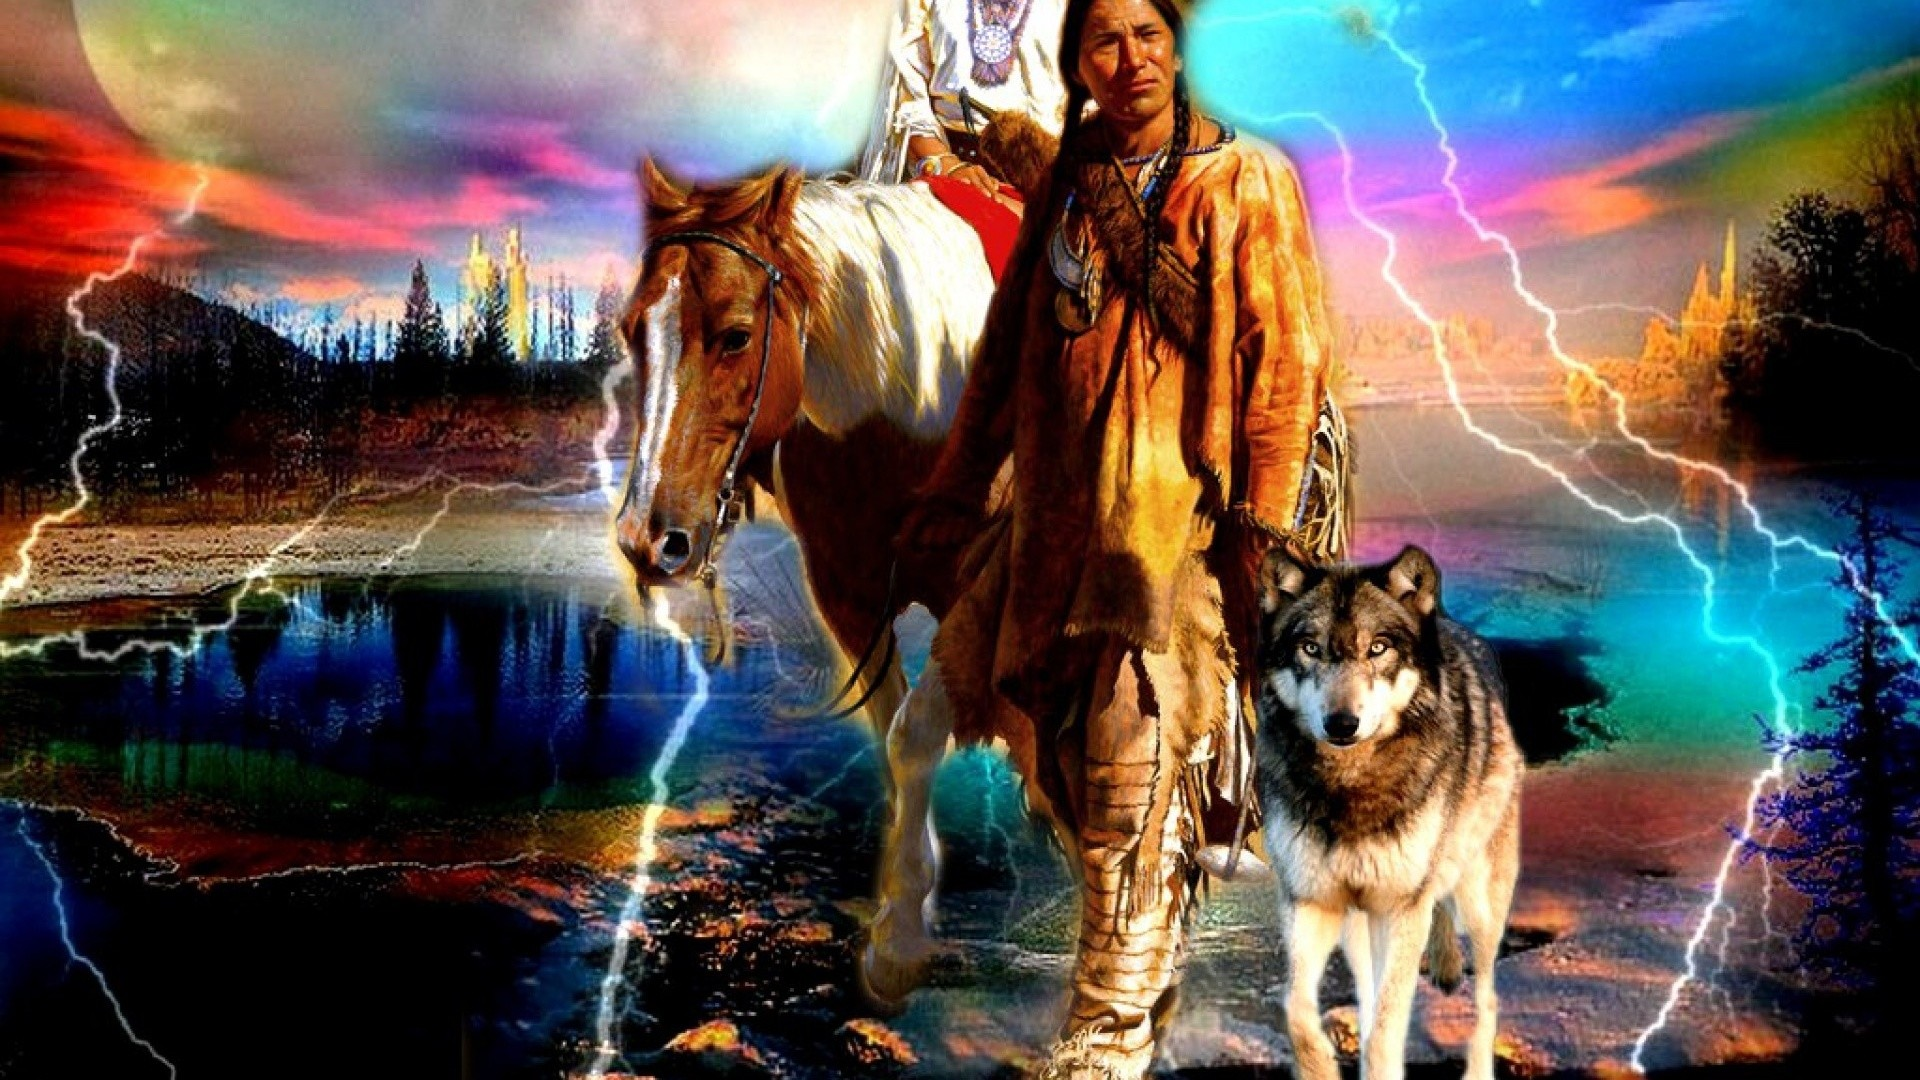 Res: 1920x1080, Native America, Indian, Horse, Wolf, Indian And Wolf